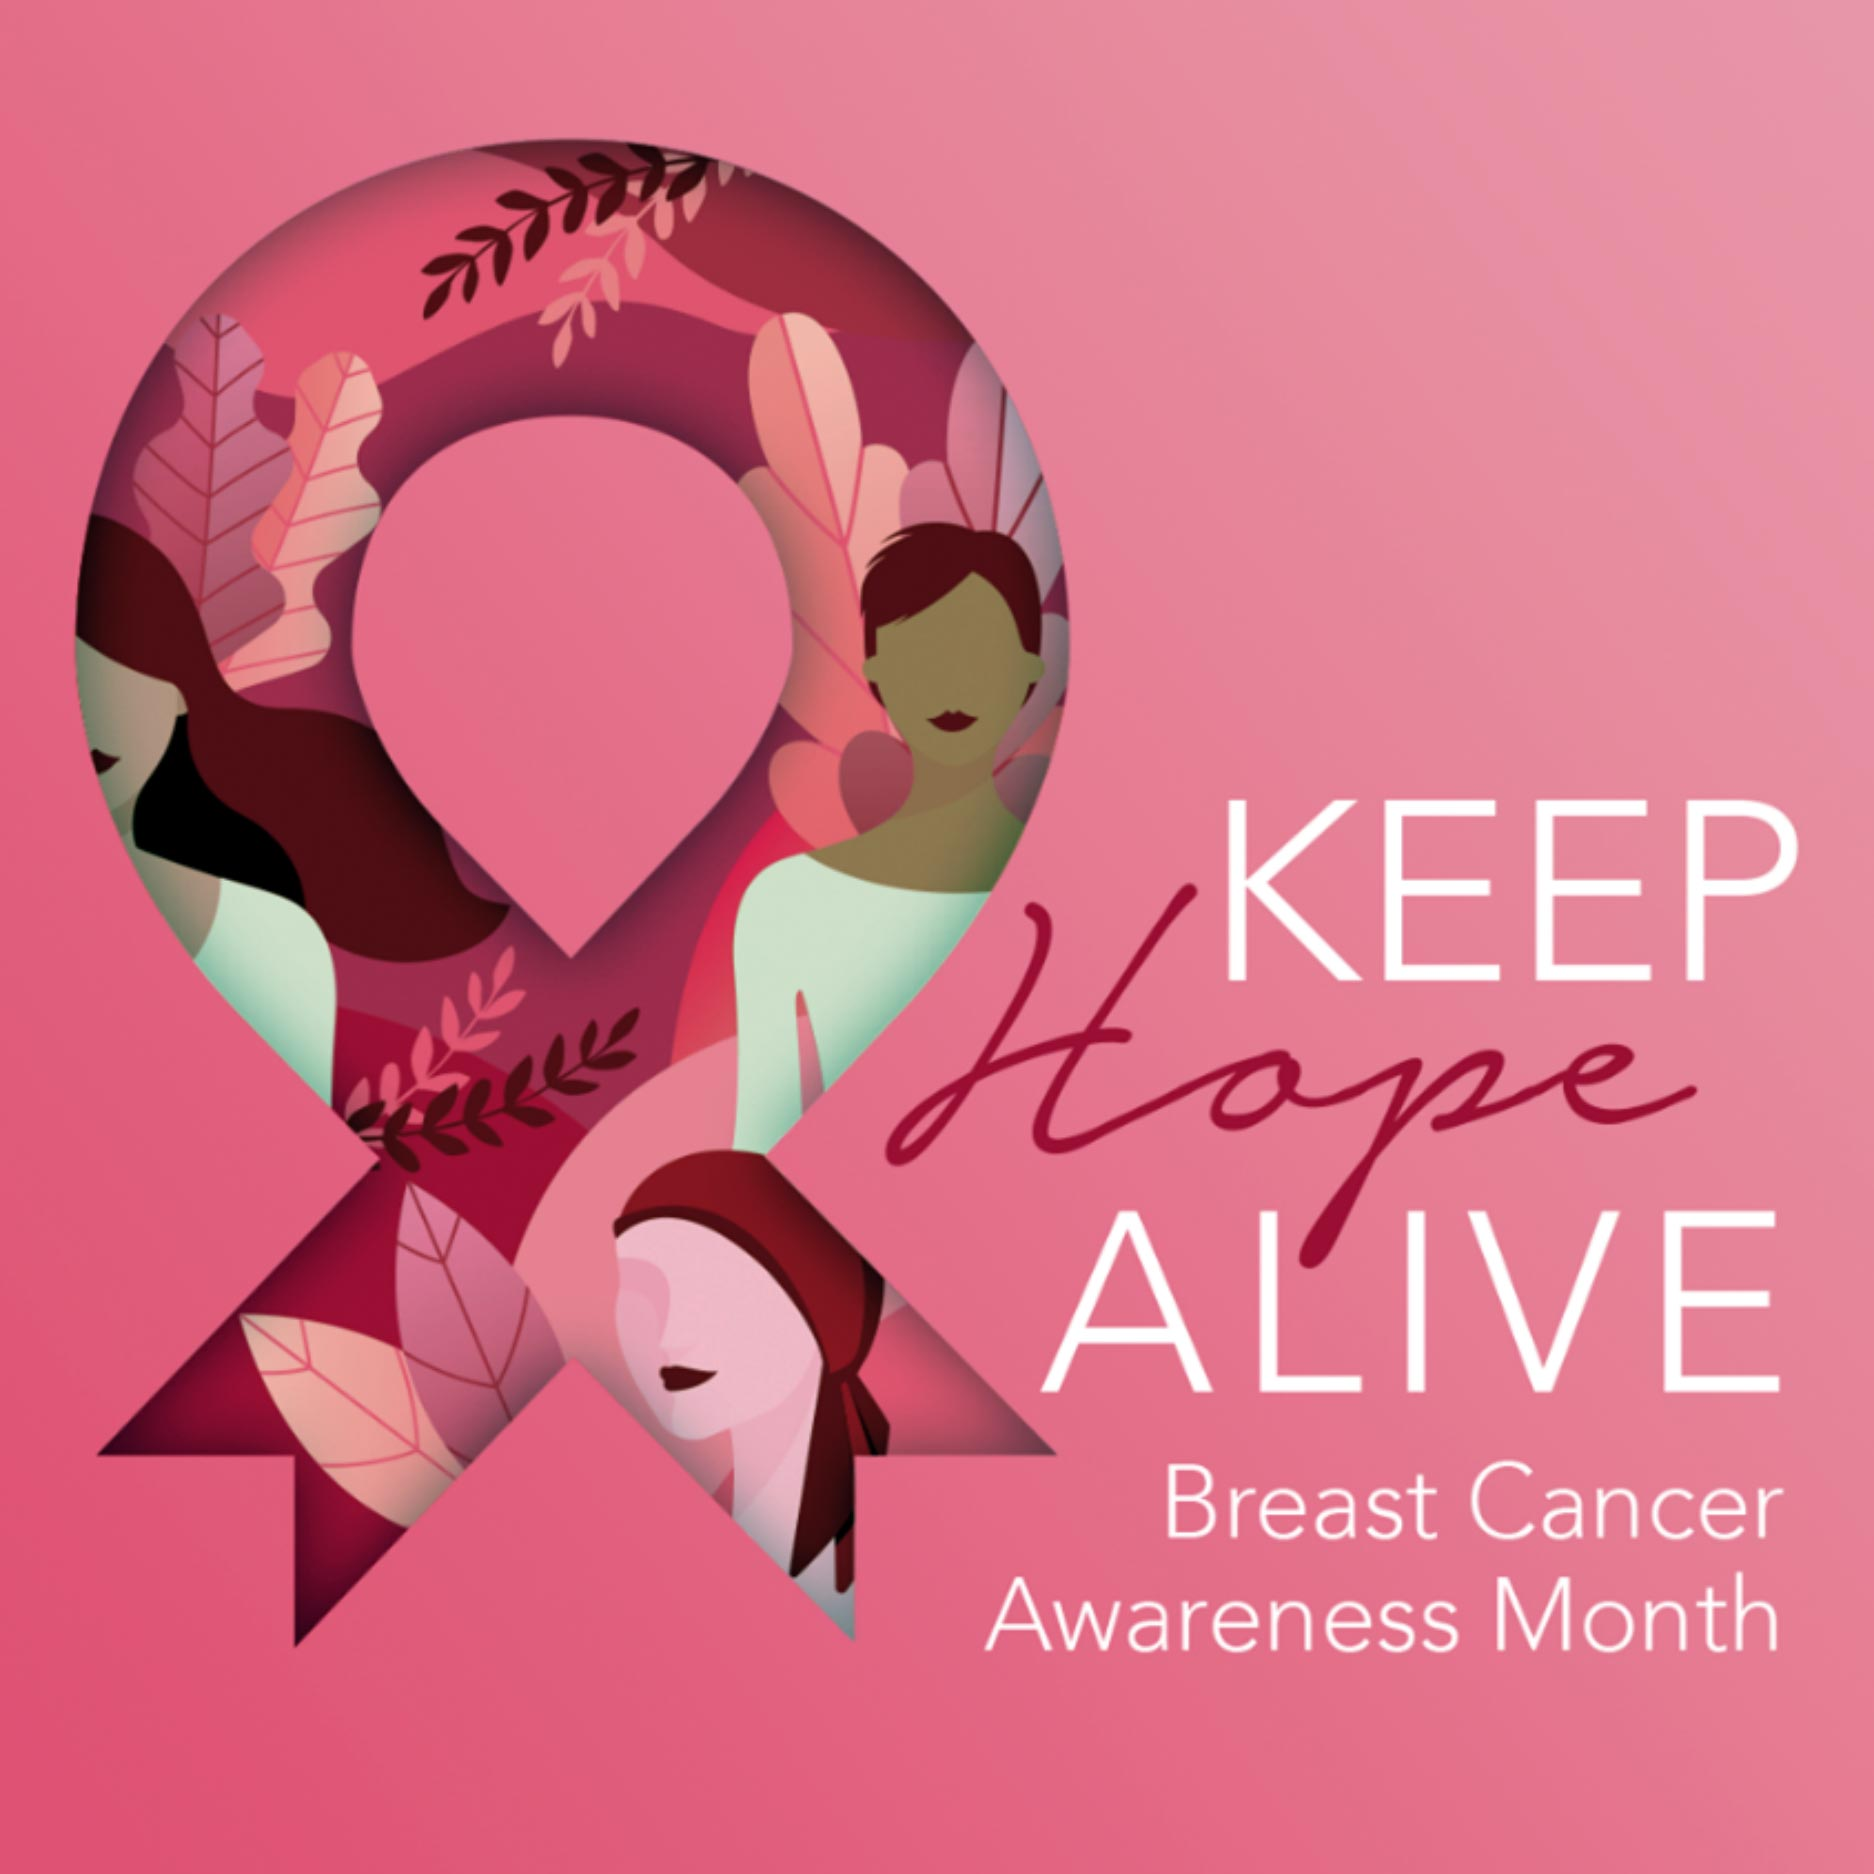 Breast Cancer Awareness Month Saves Lives Colorado Springs